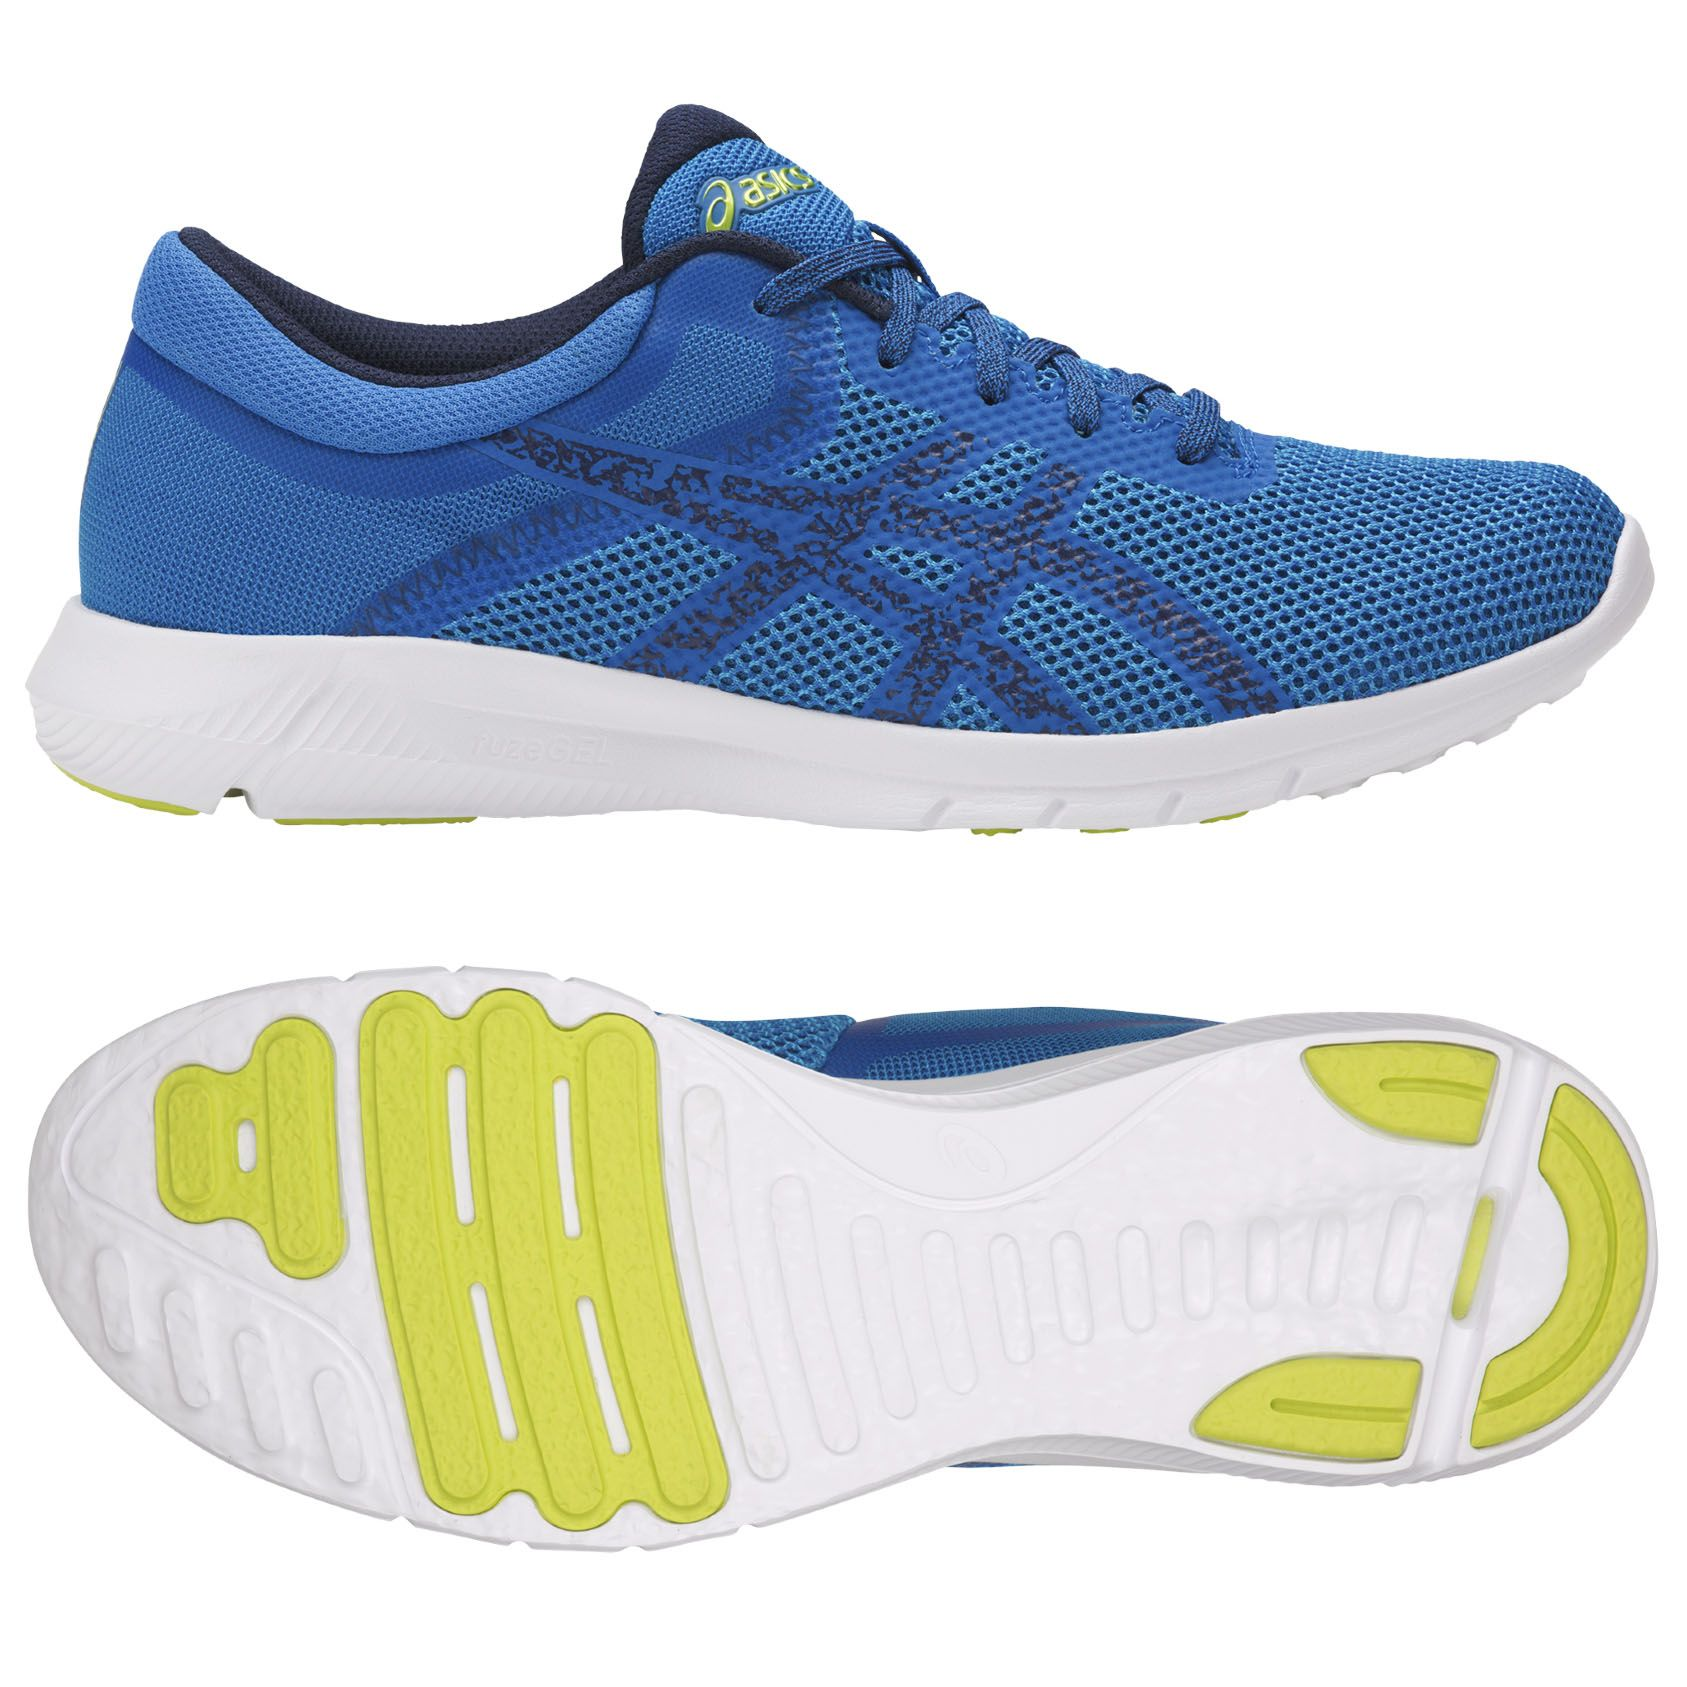 Asics Nitrofuze 2 Mens Running Shoes Blue 10 Uk Asics Nitrofuze 2 Mens Running Shoes Blue 10 Uk Super Light Running Shoes For Men Blue Shoes Man Running